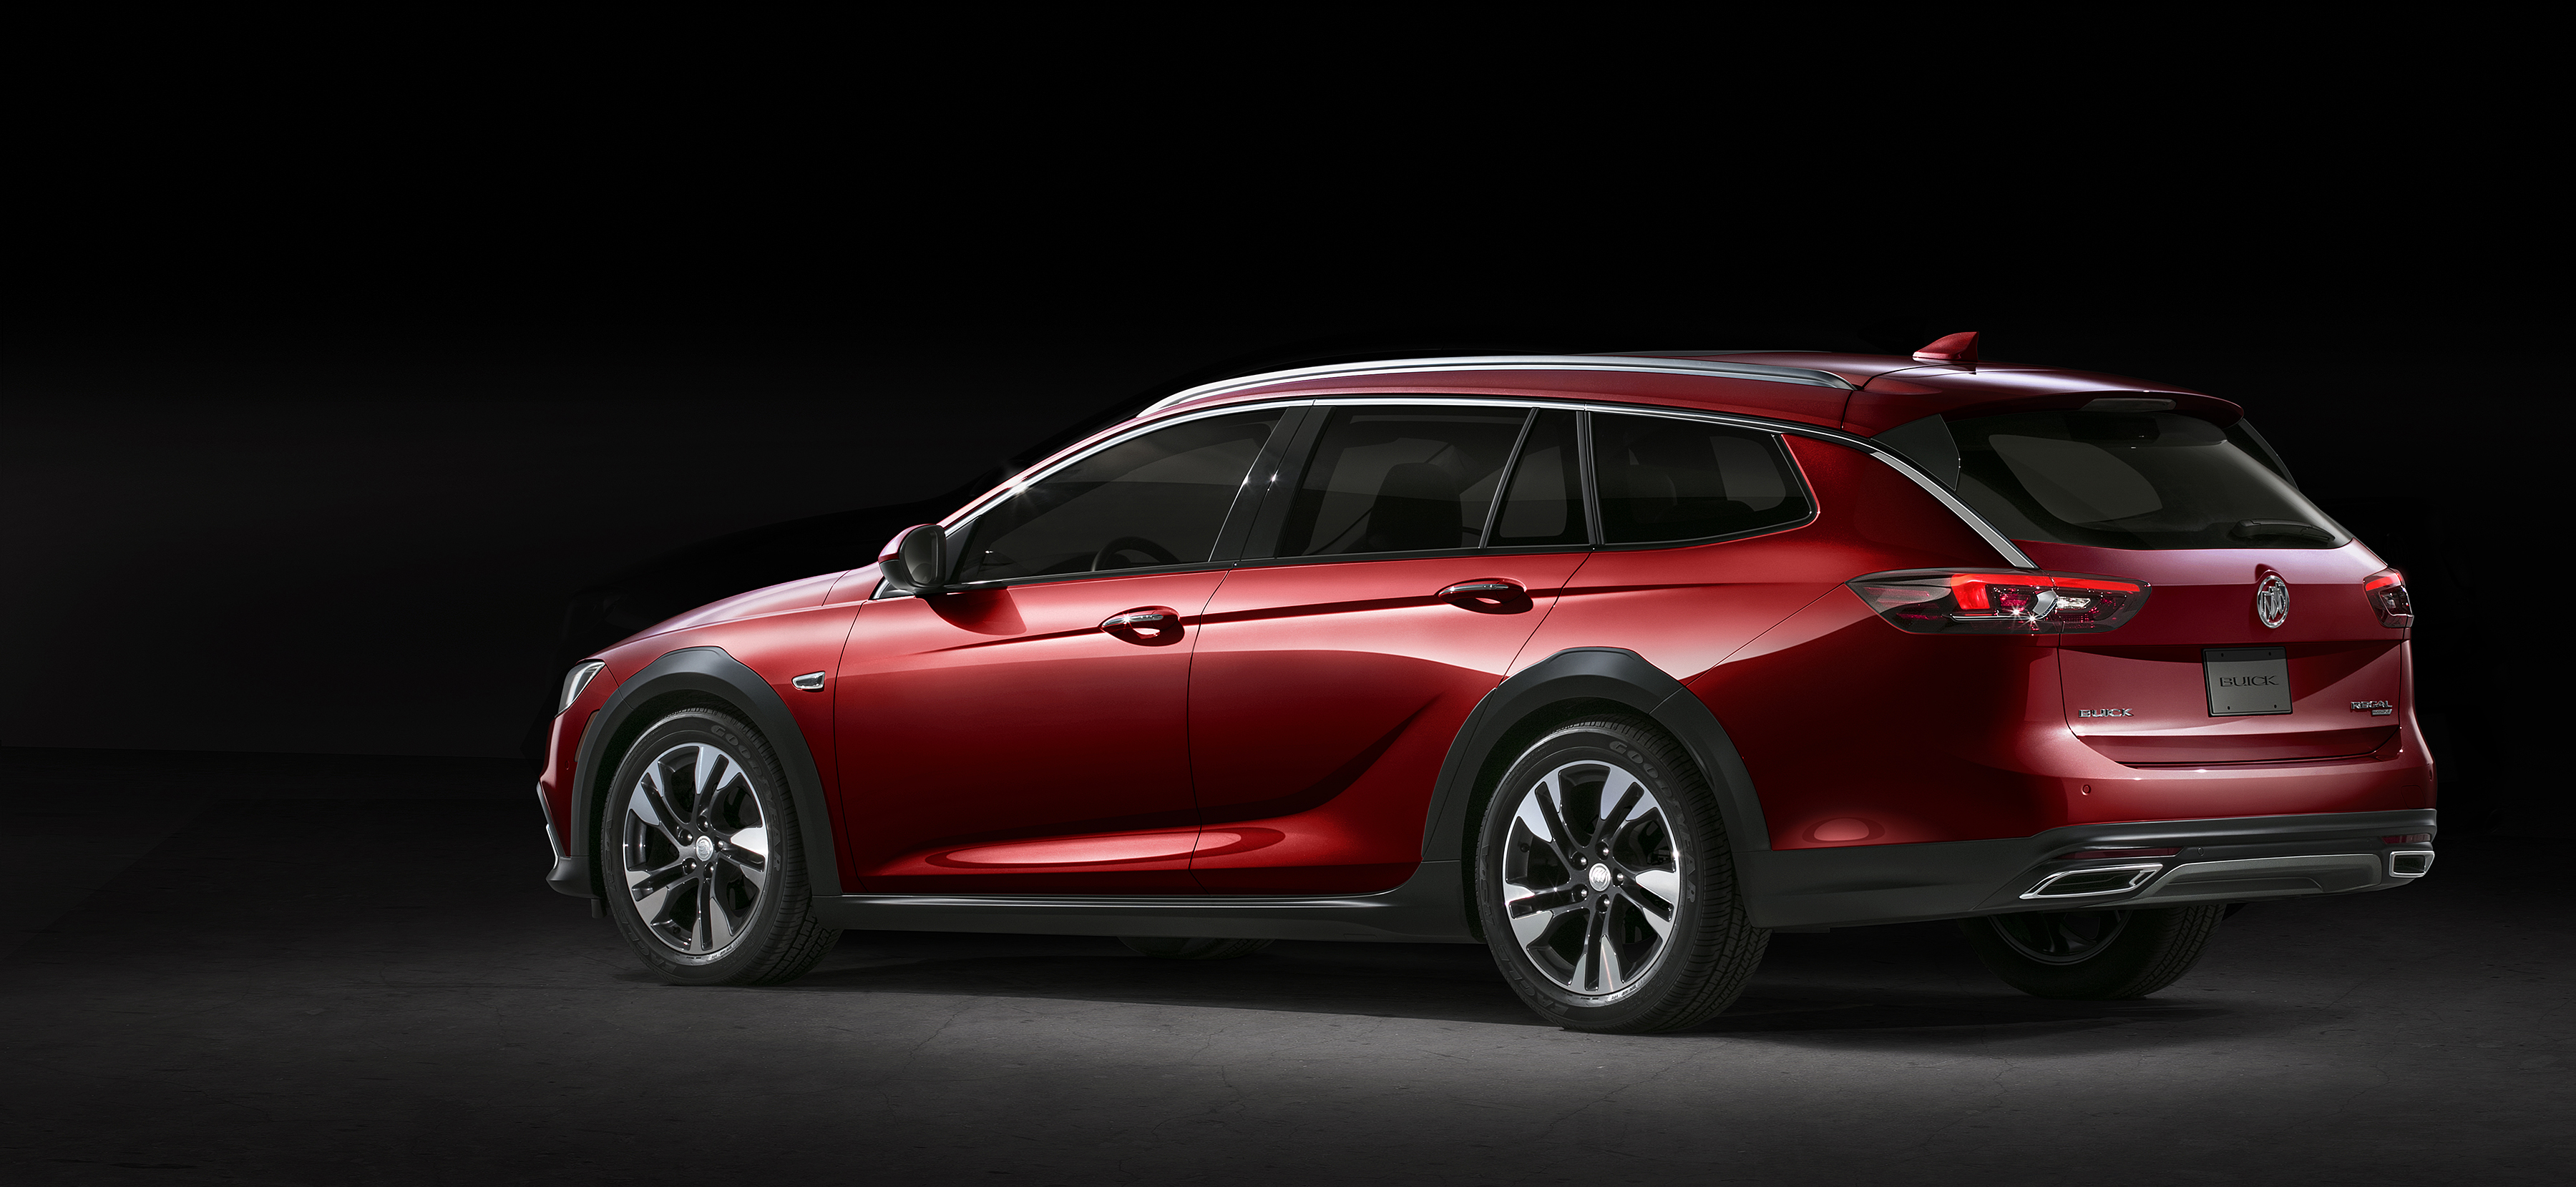 2018 buick regal tourx is america 39 s station wagon with suv for Mercedes benz station wagon 2018